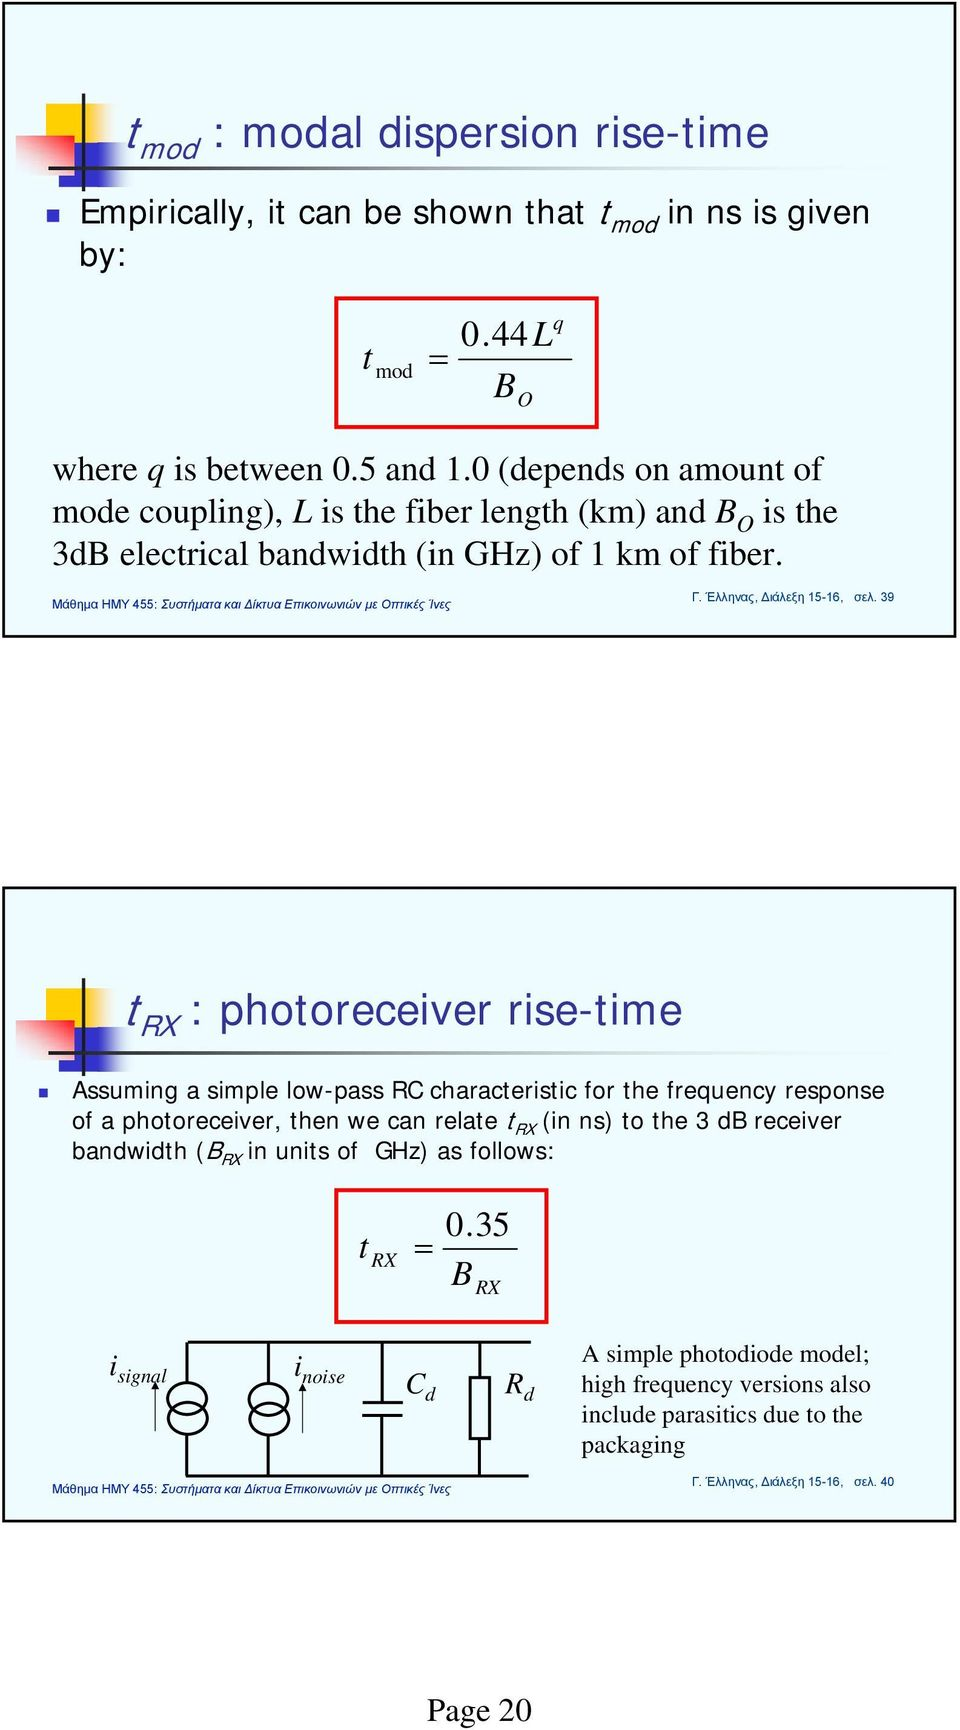 39 t RX : photoreceiver rise-time Assuming a simple low-pass RC characteristic for the frequency response of a photoreceiver, then we can relate t RX (in ns) to the 3 db receiver